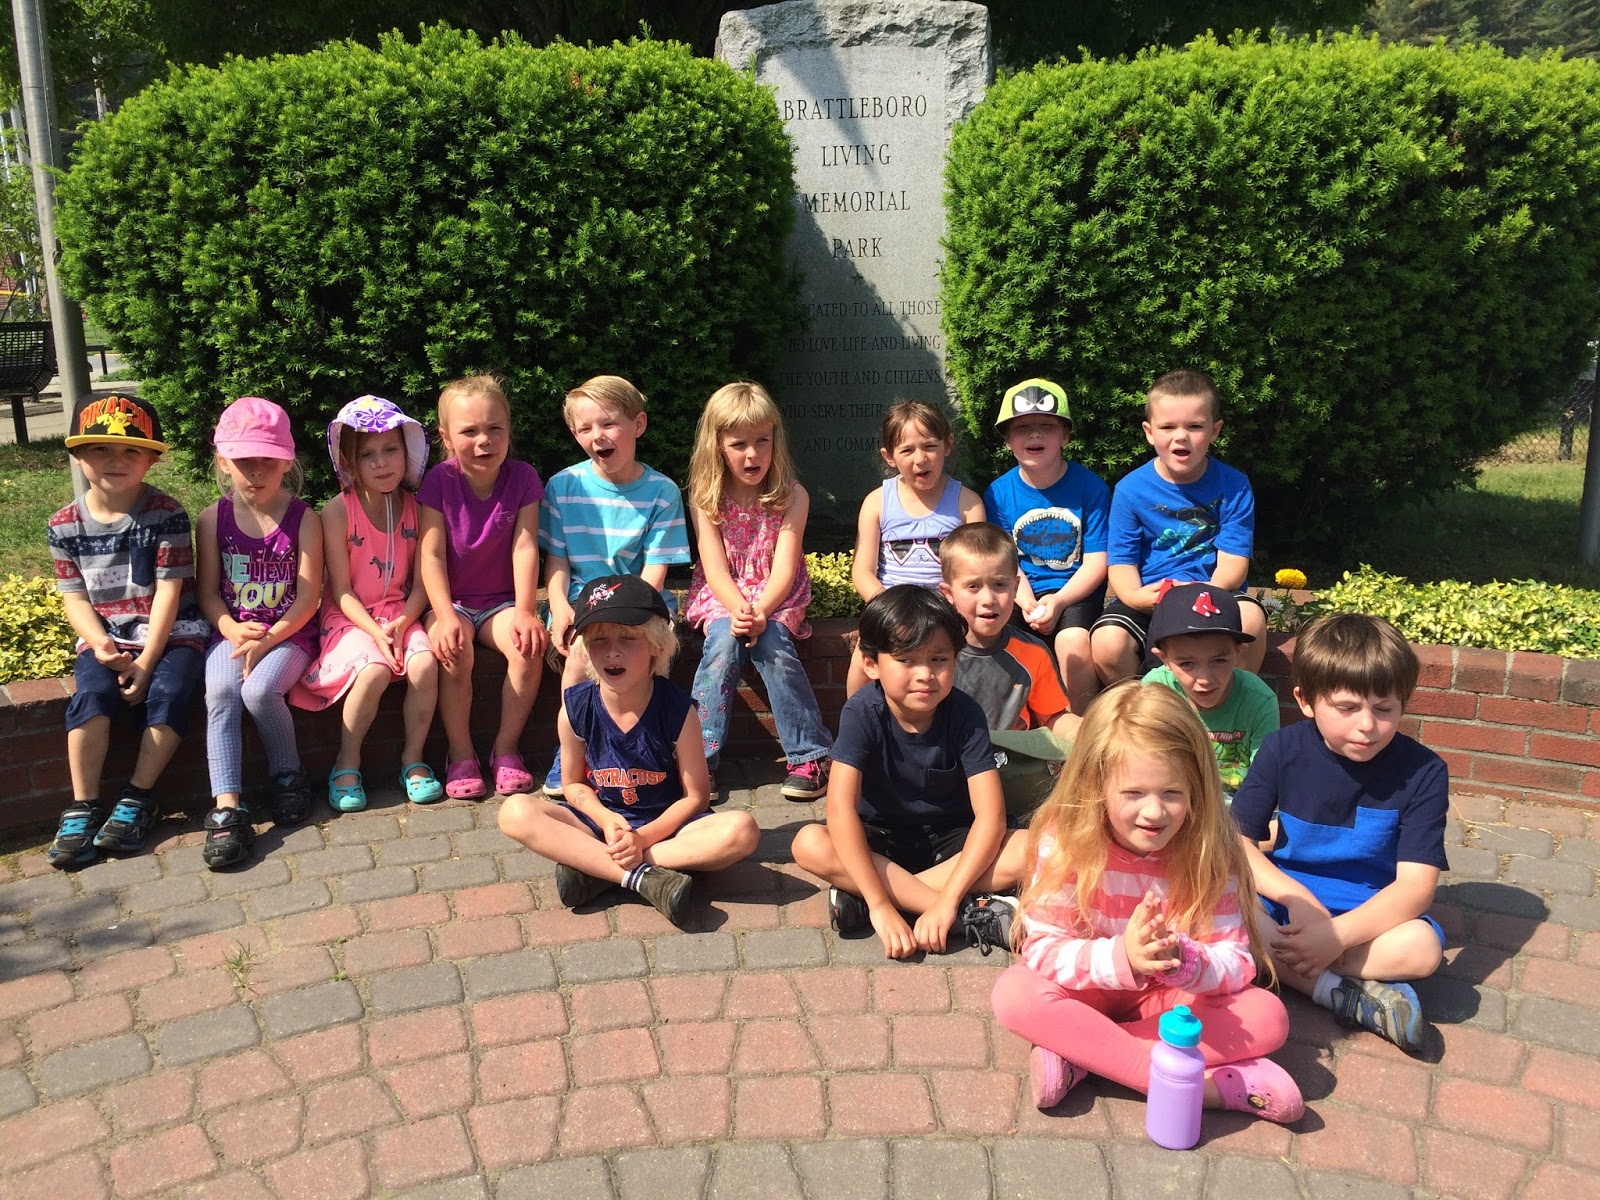 Mrs Parzych S Kindergarten Memorial Park Field Trip